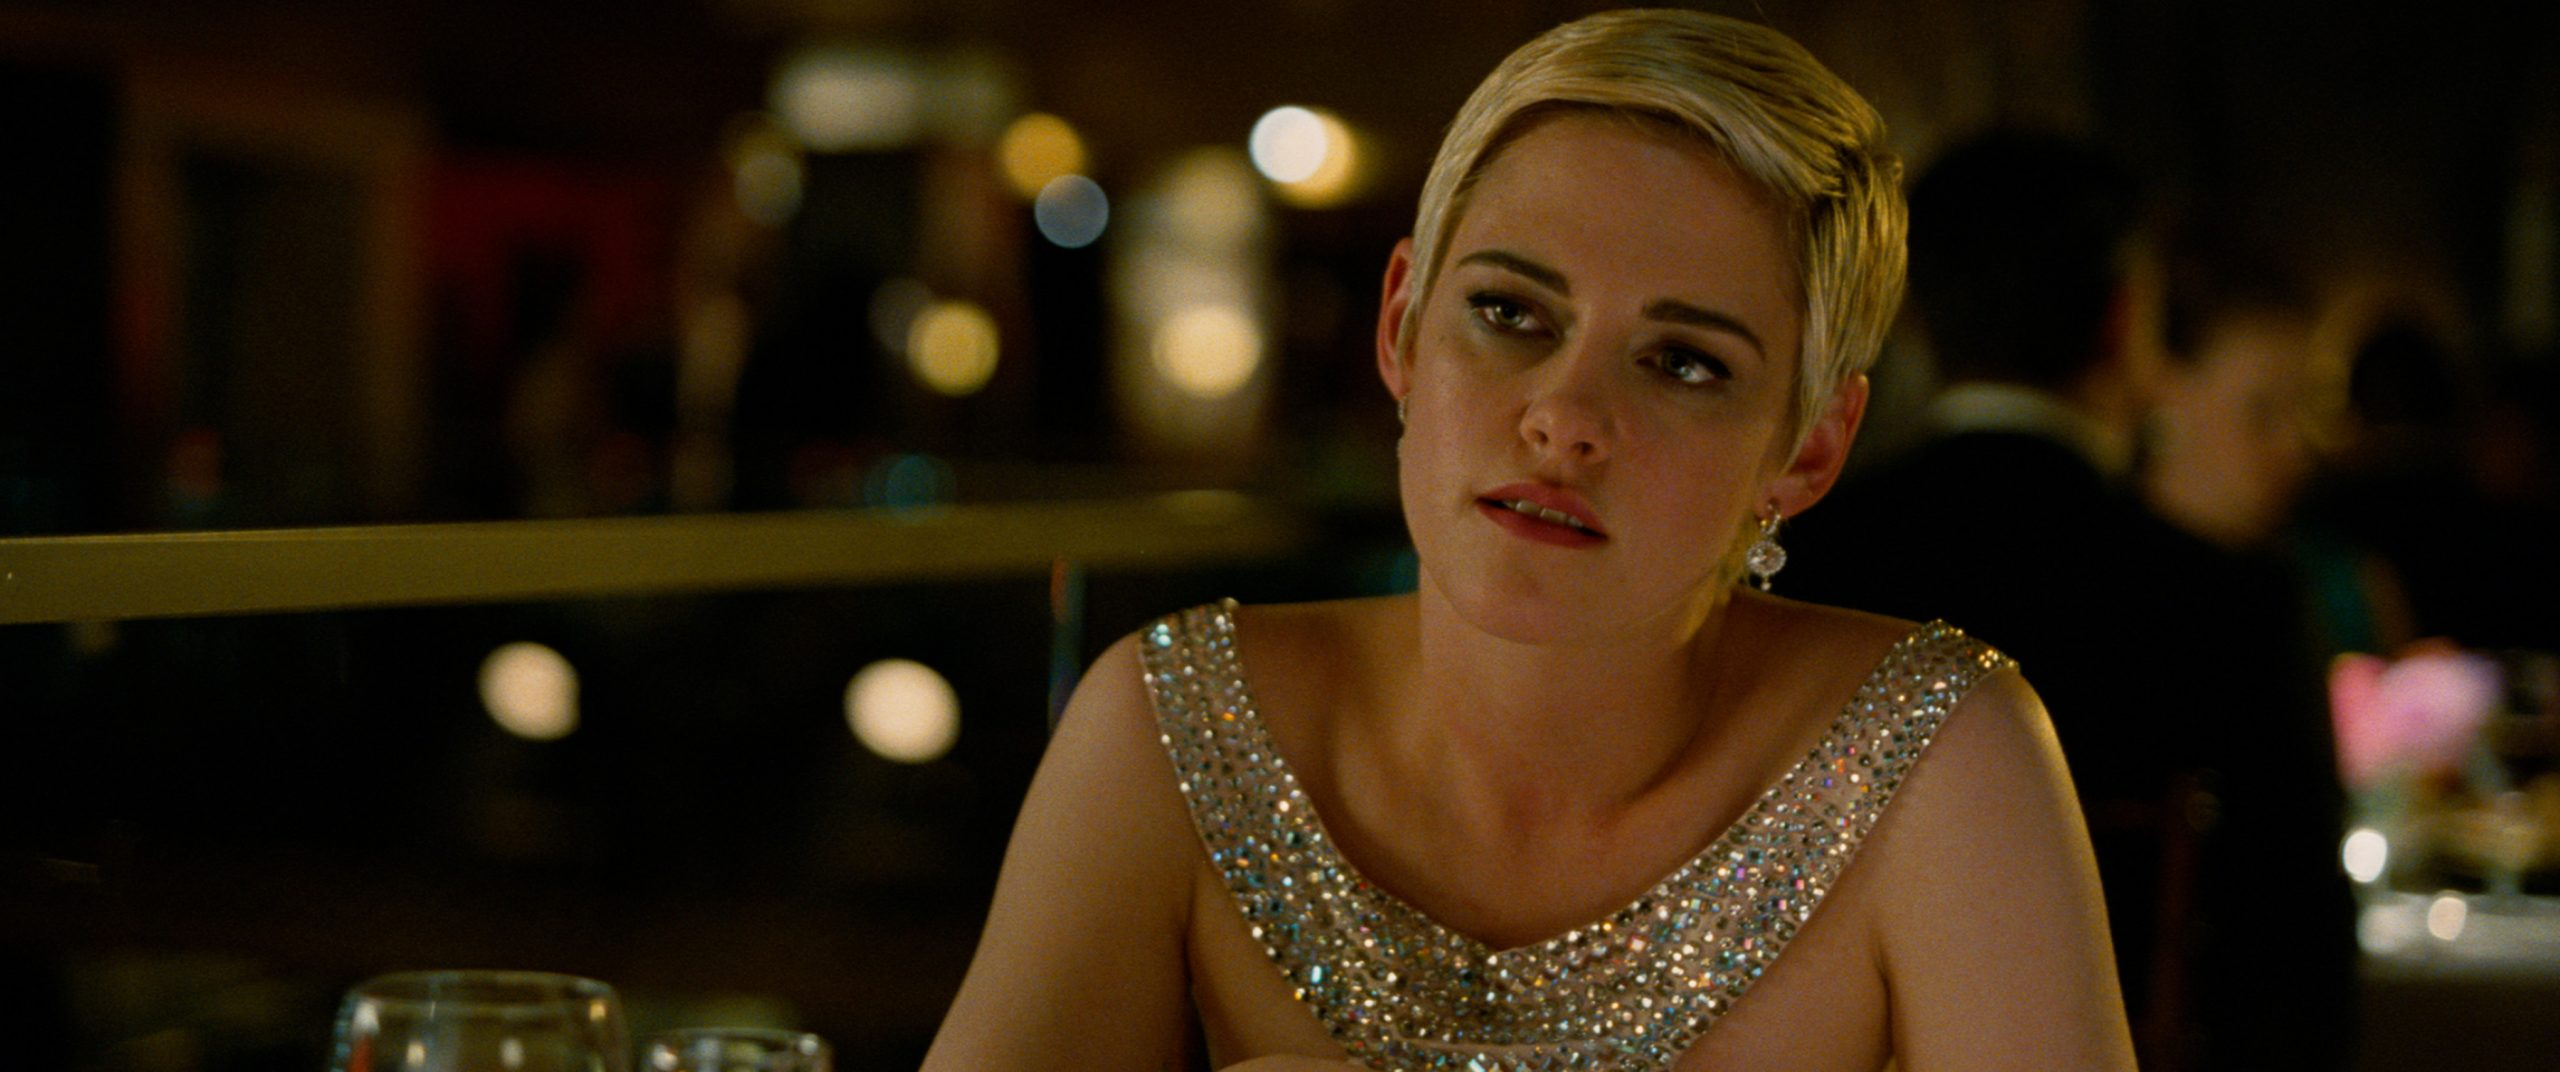 Seberg Review: Kristen Stewart Will Leave You Breathless